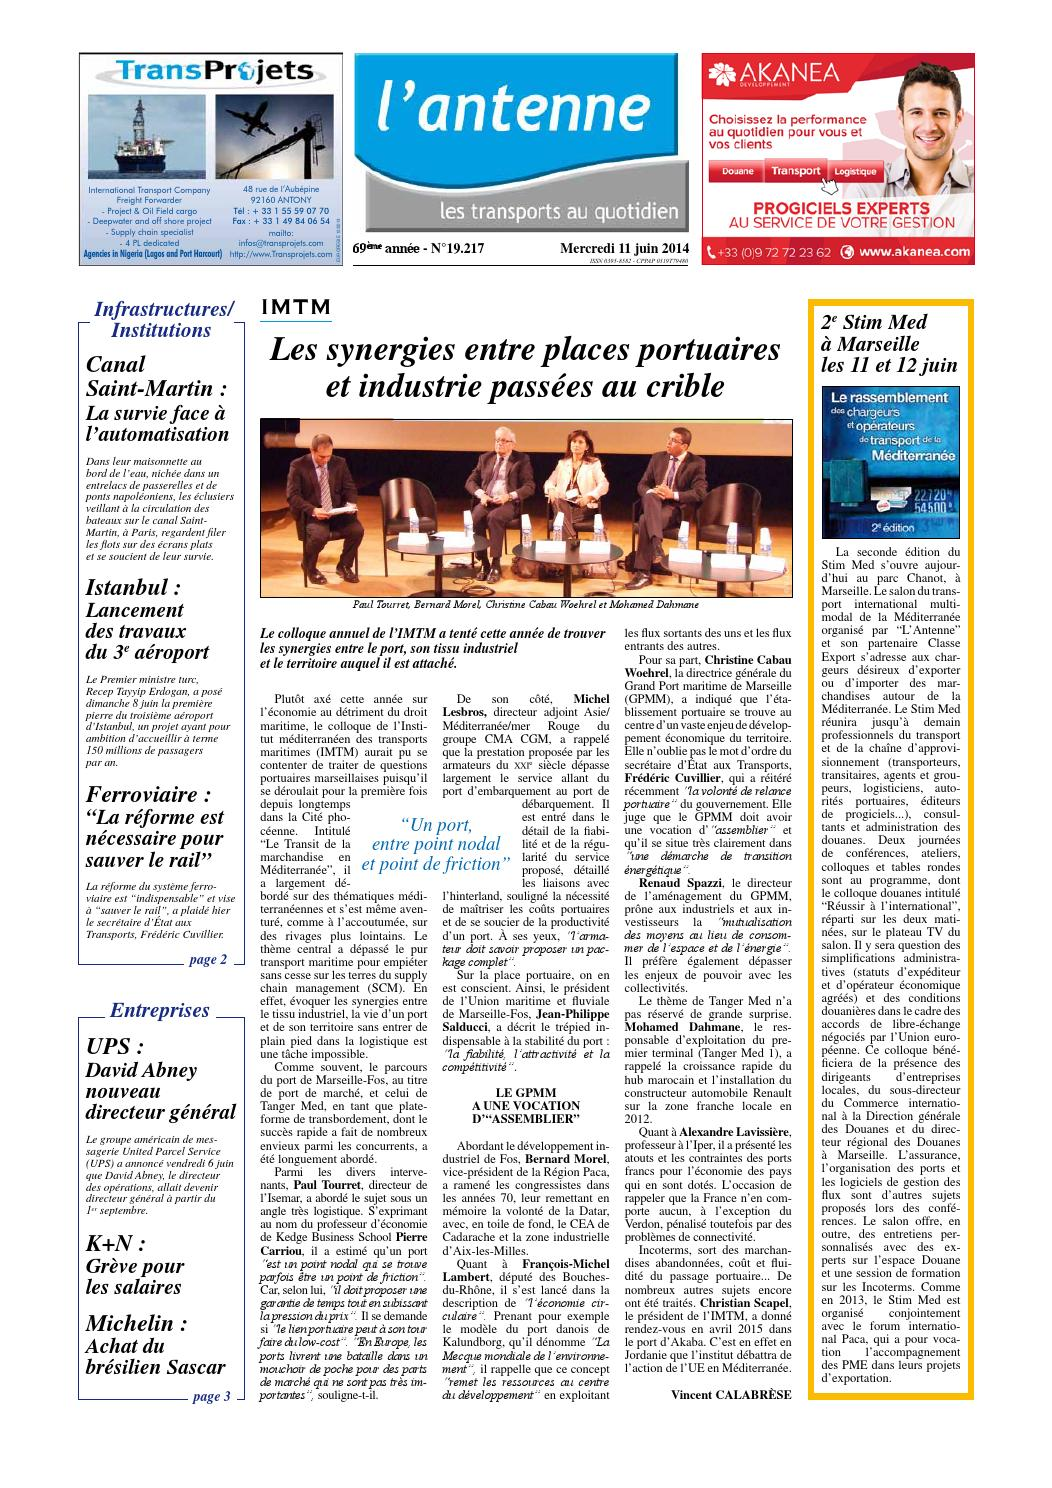 Lantenne 11 06 2014 by l 39 antenne smeci issuu for Antenne 2 telematin cuisine